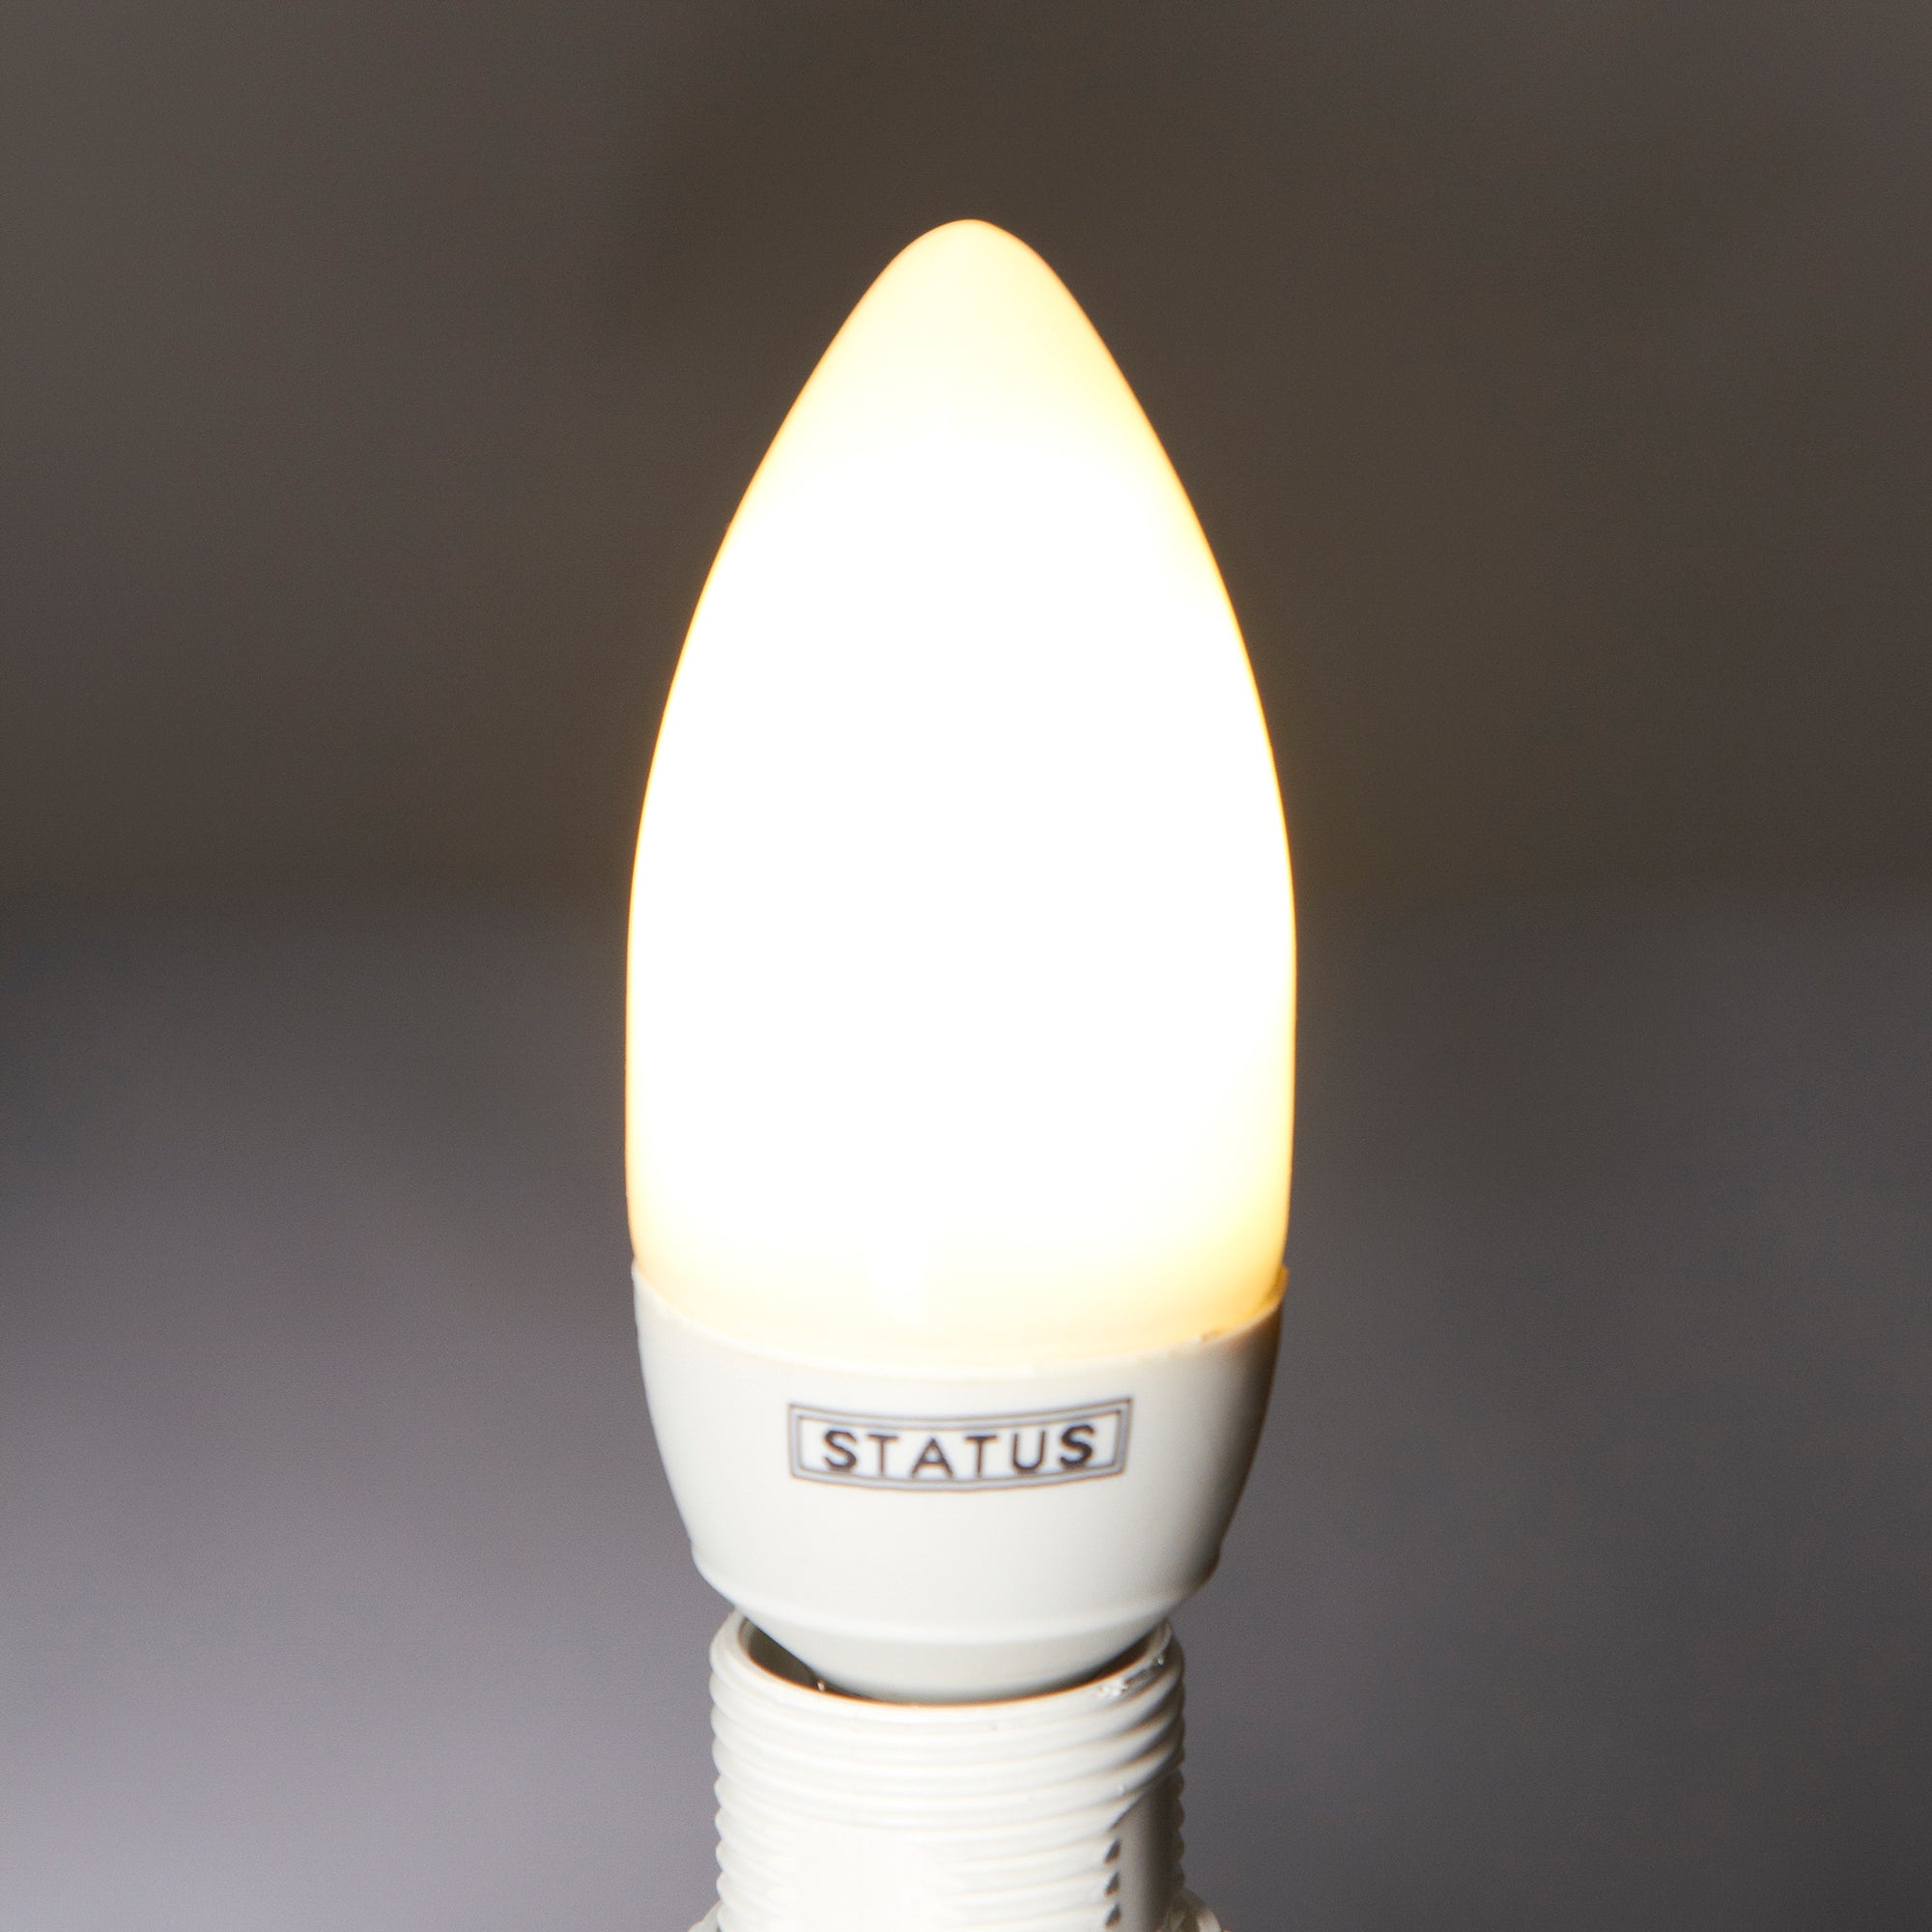 Status Energy Saving 7 Watt SES Candle Bulb